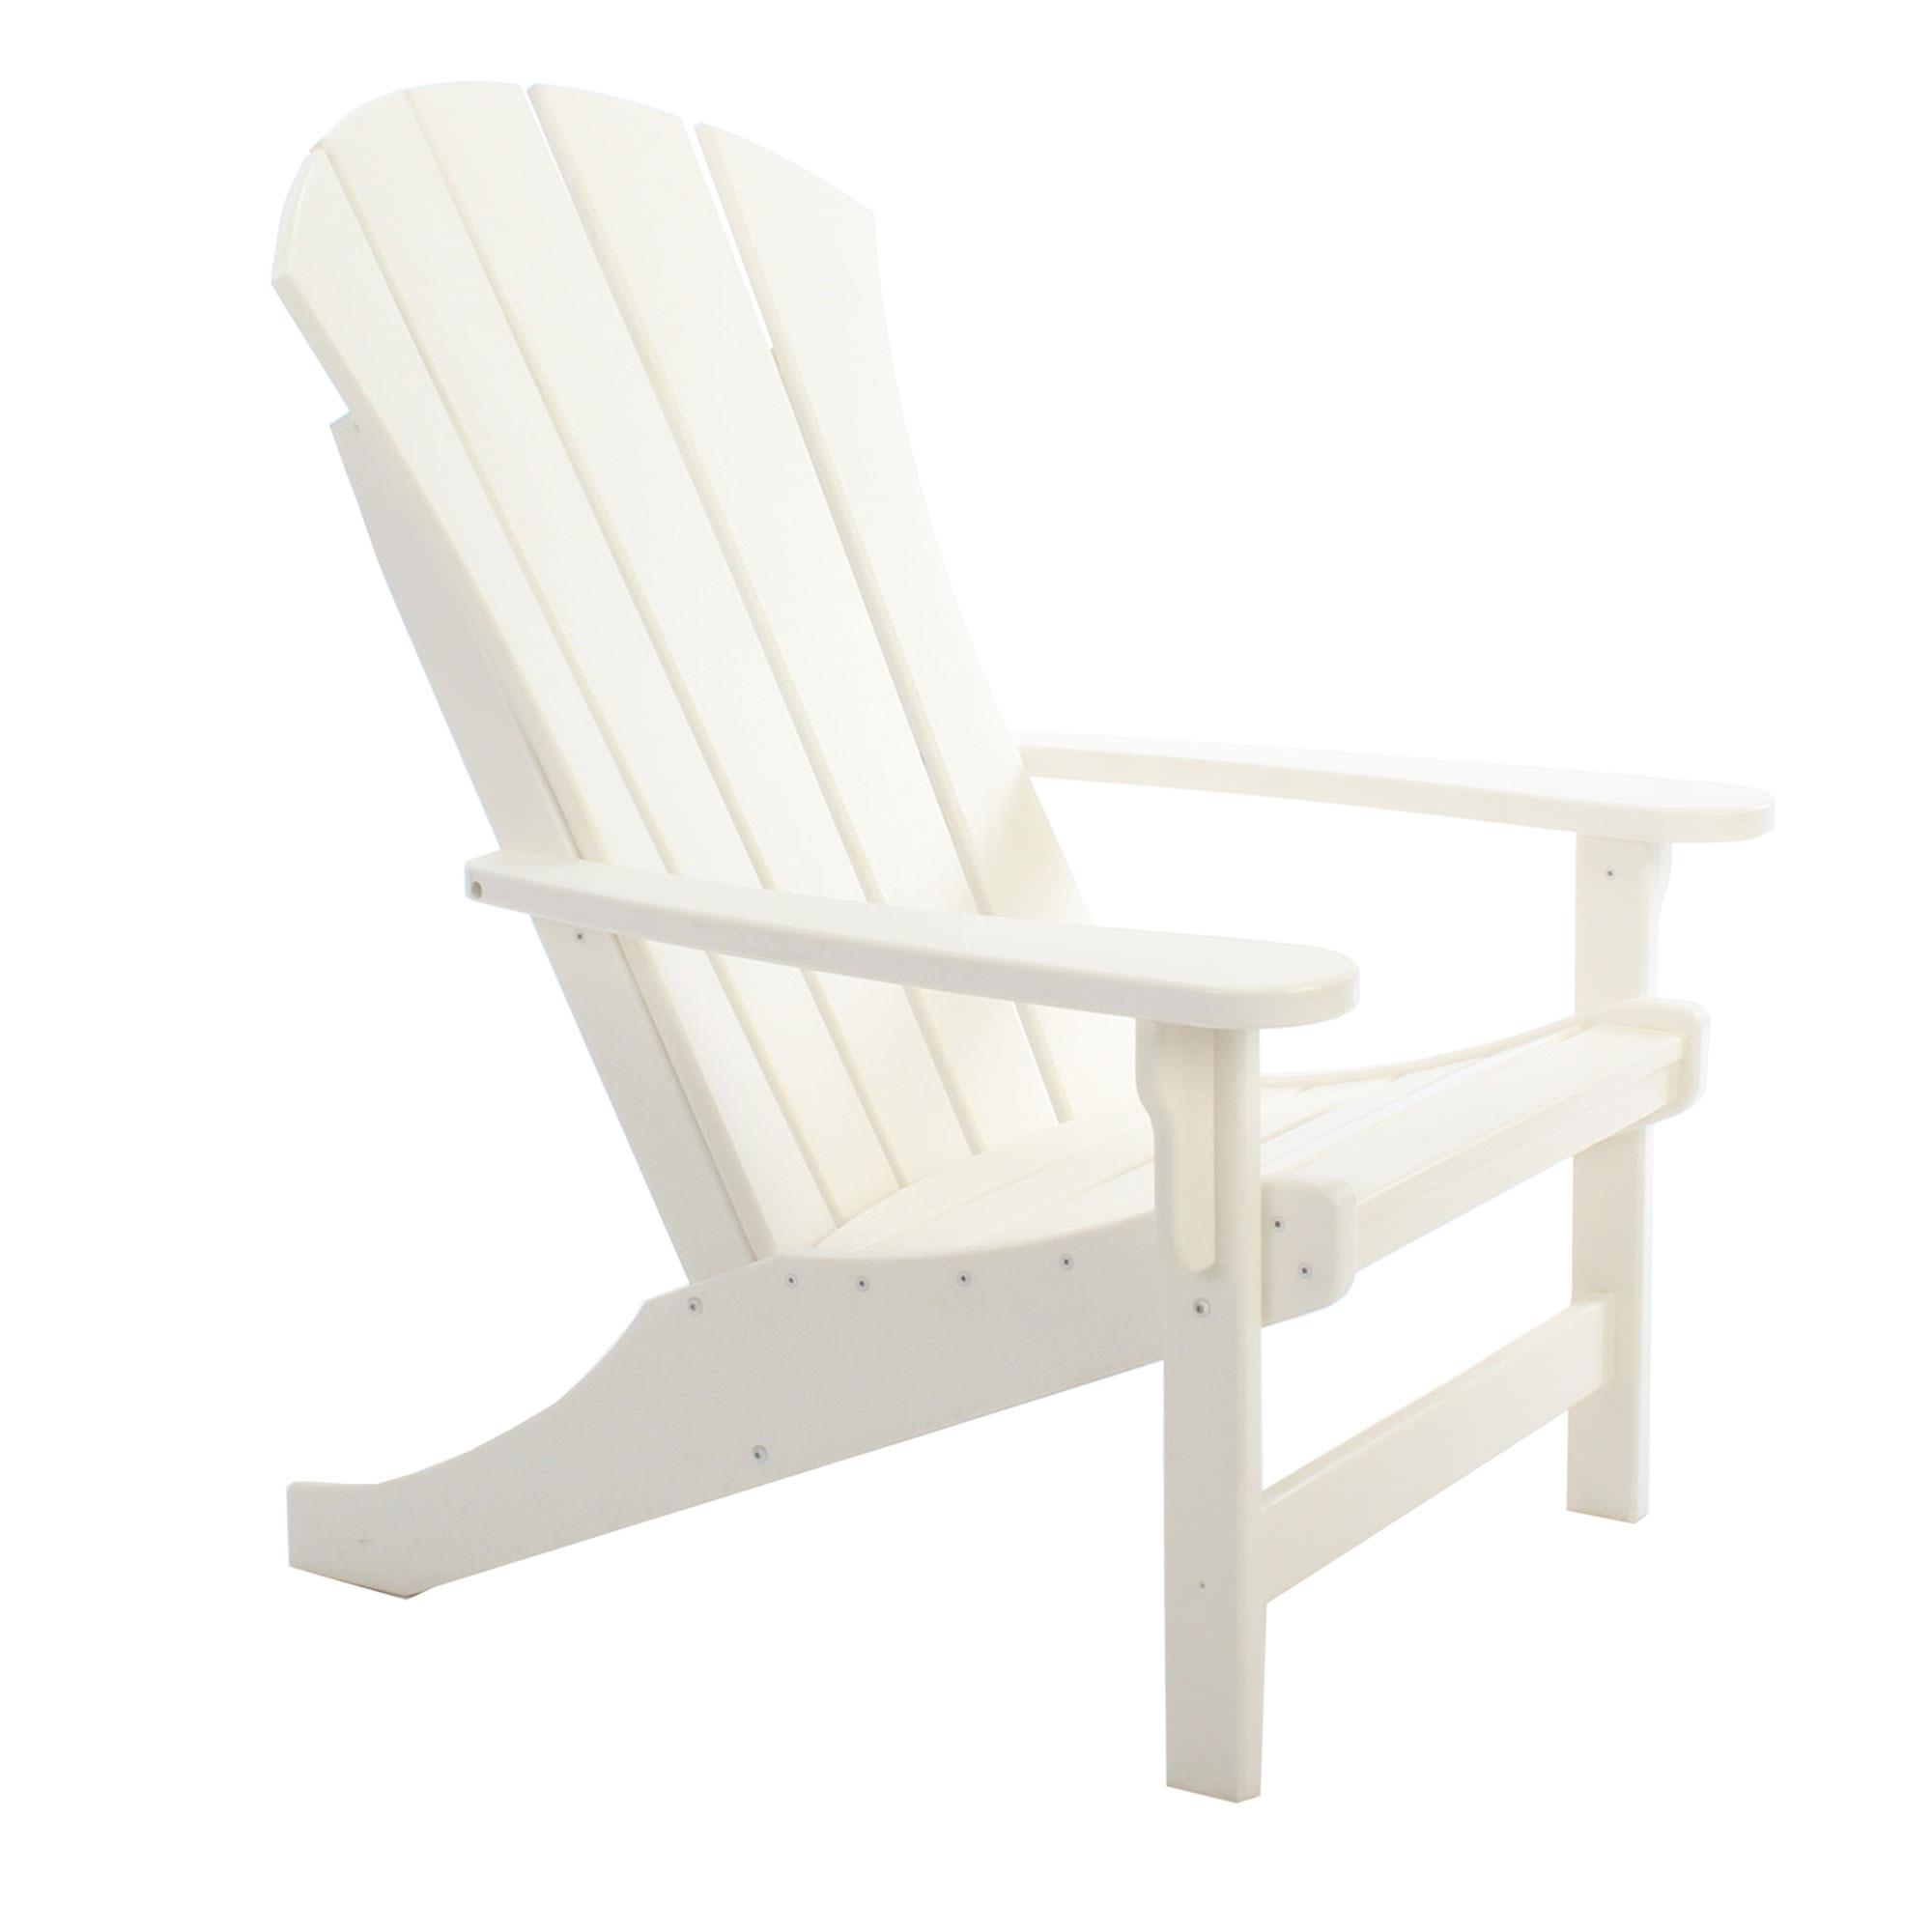 ... Sunrise White Durawood Adirondack Chair ...